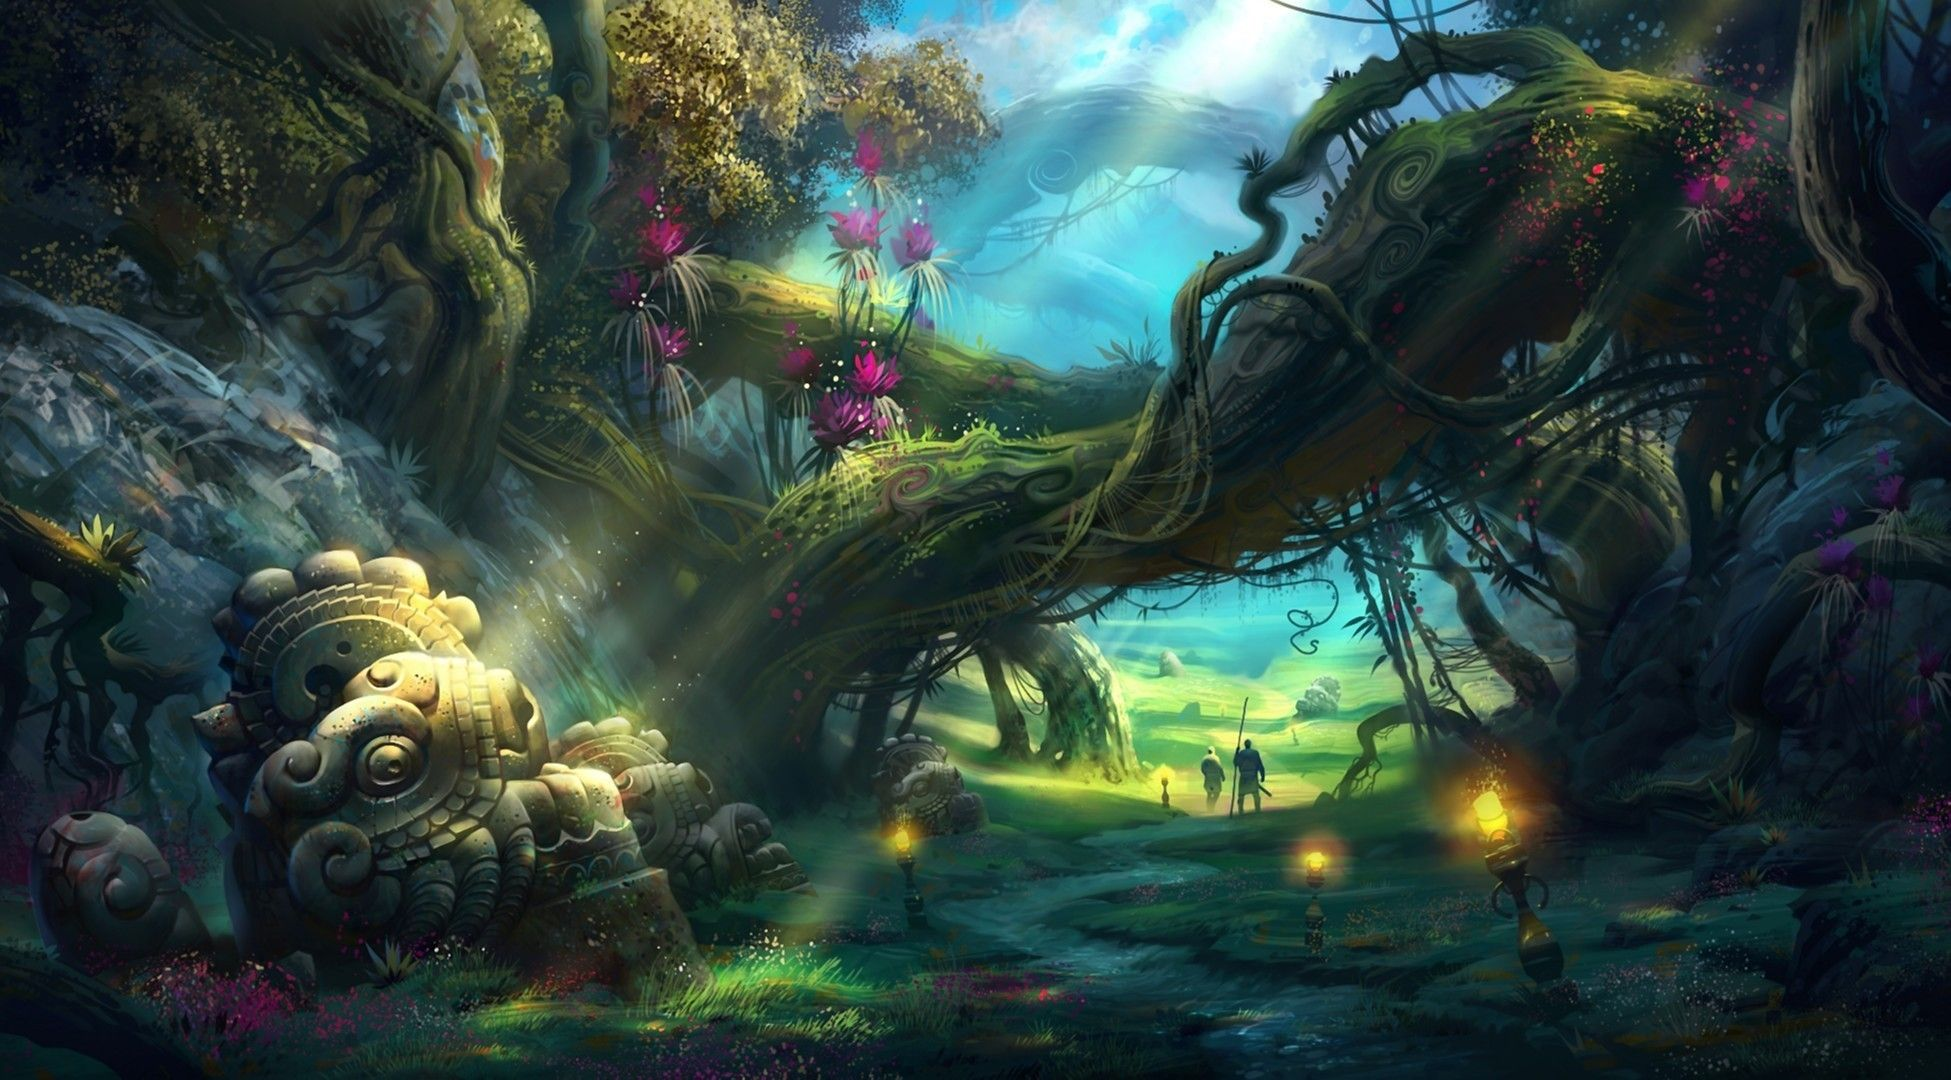 Anime Fantasy Landscape Wallpapers Android With High Definition Resolution 1951x1080 Px 40748 KB